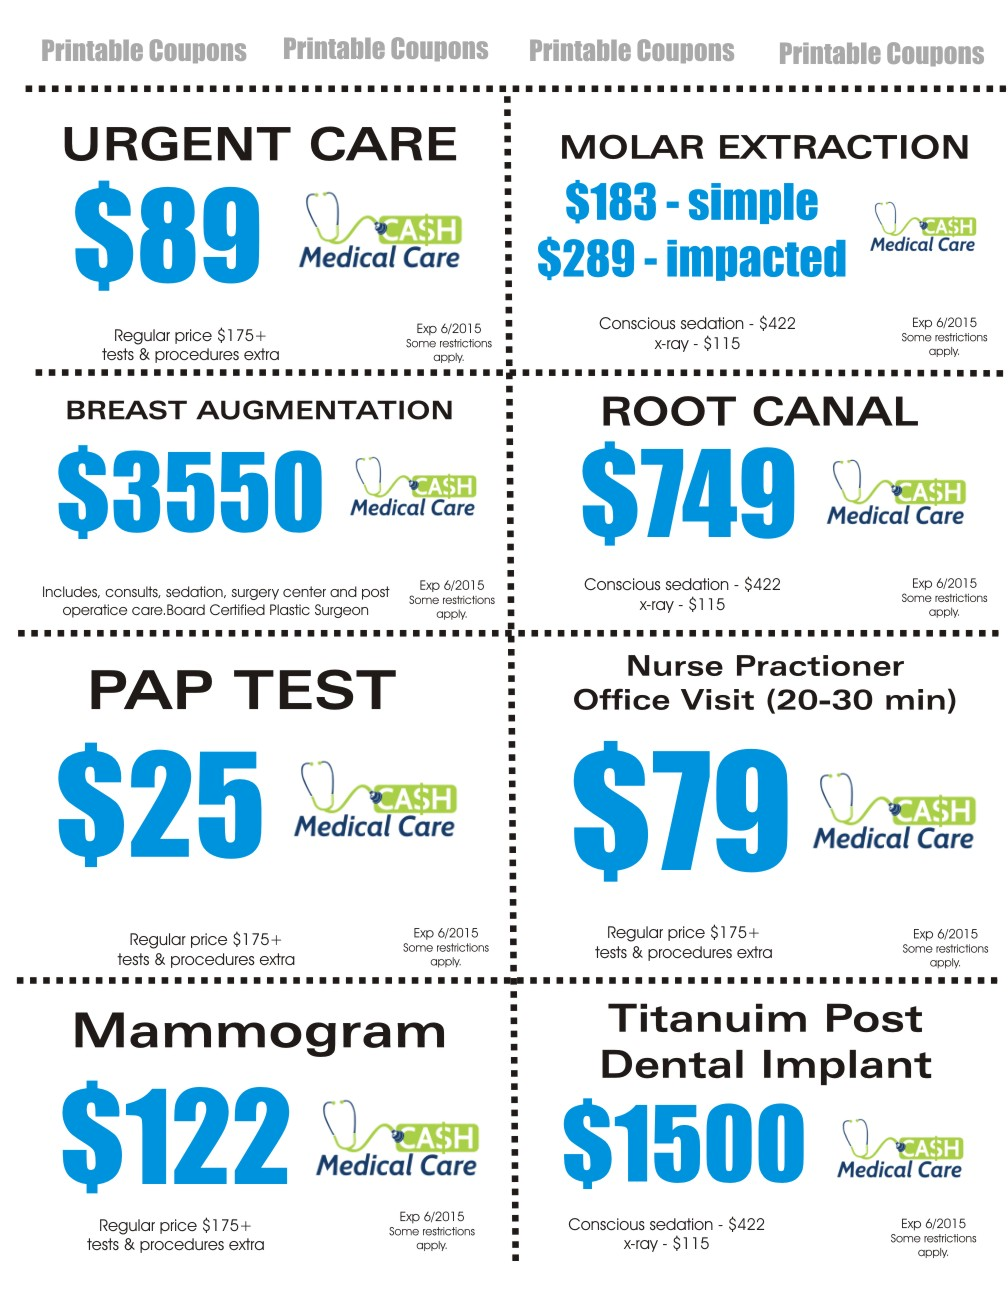 July 2014 Coupons